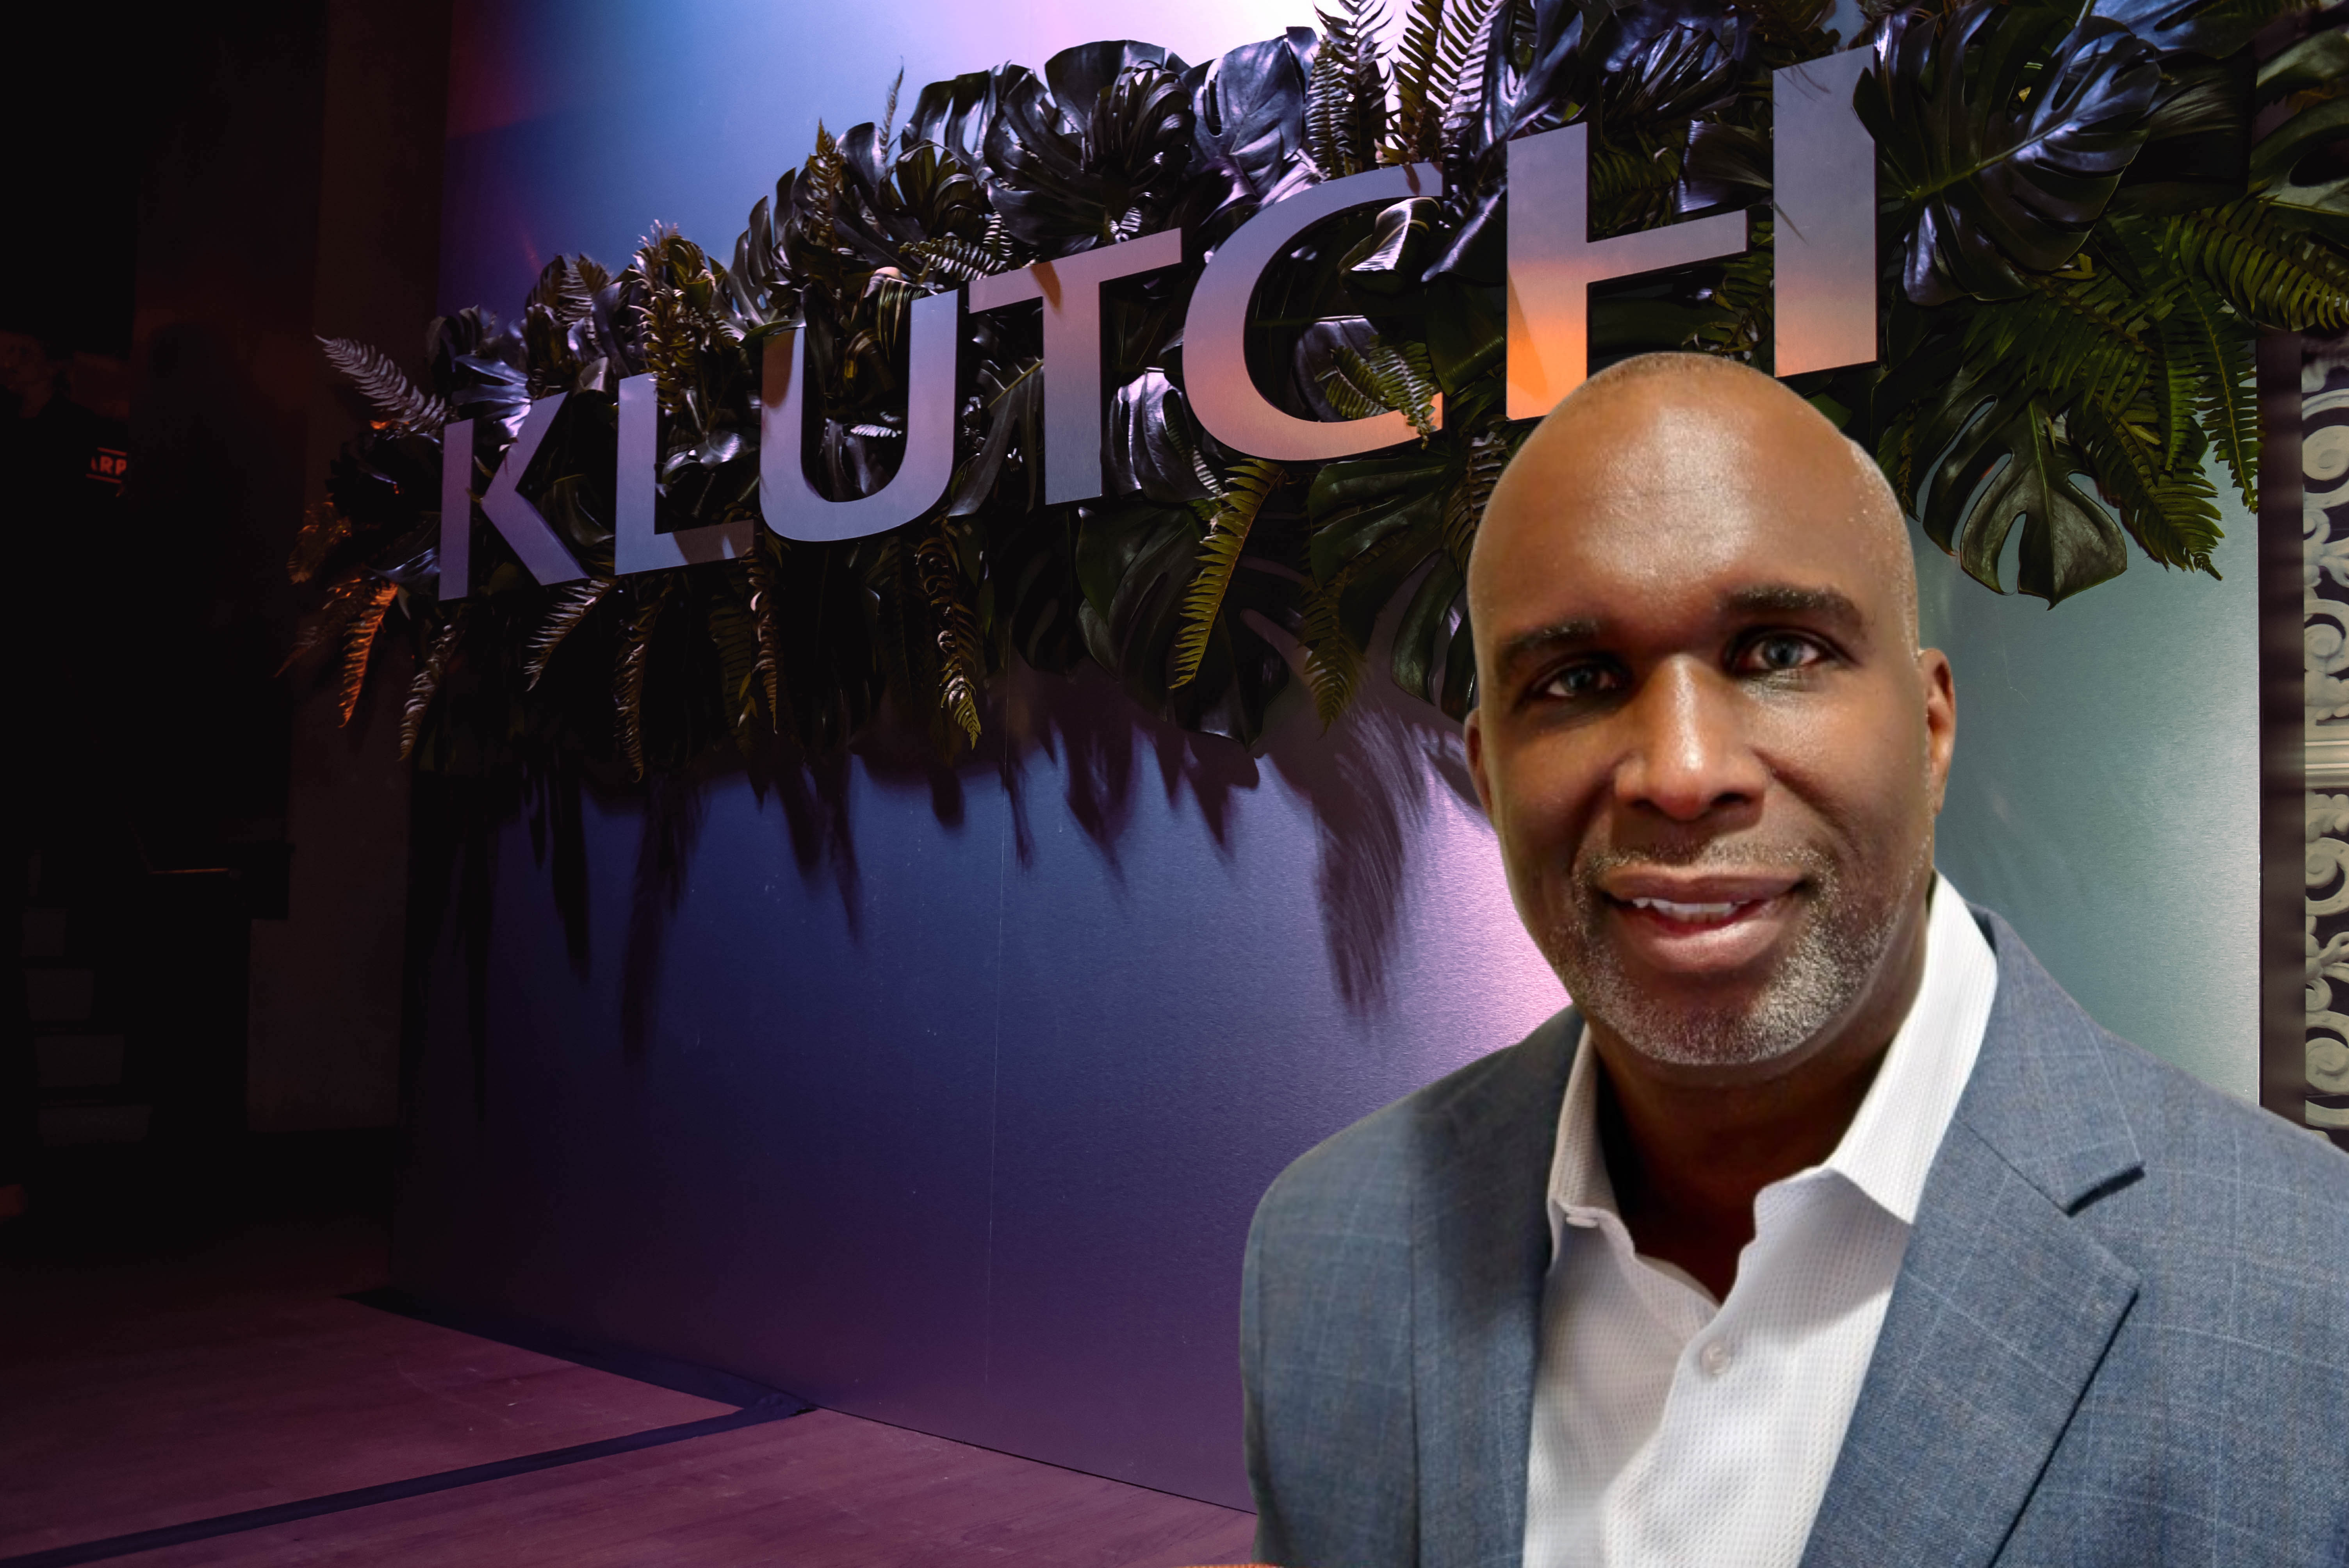 Agent Calvin Andrews is joining Rich Paul's Klutch Sports. We spoke with him about the move